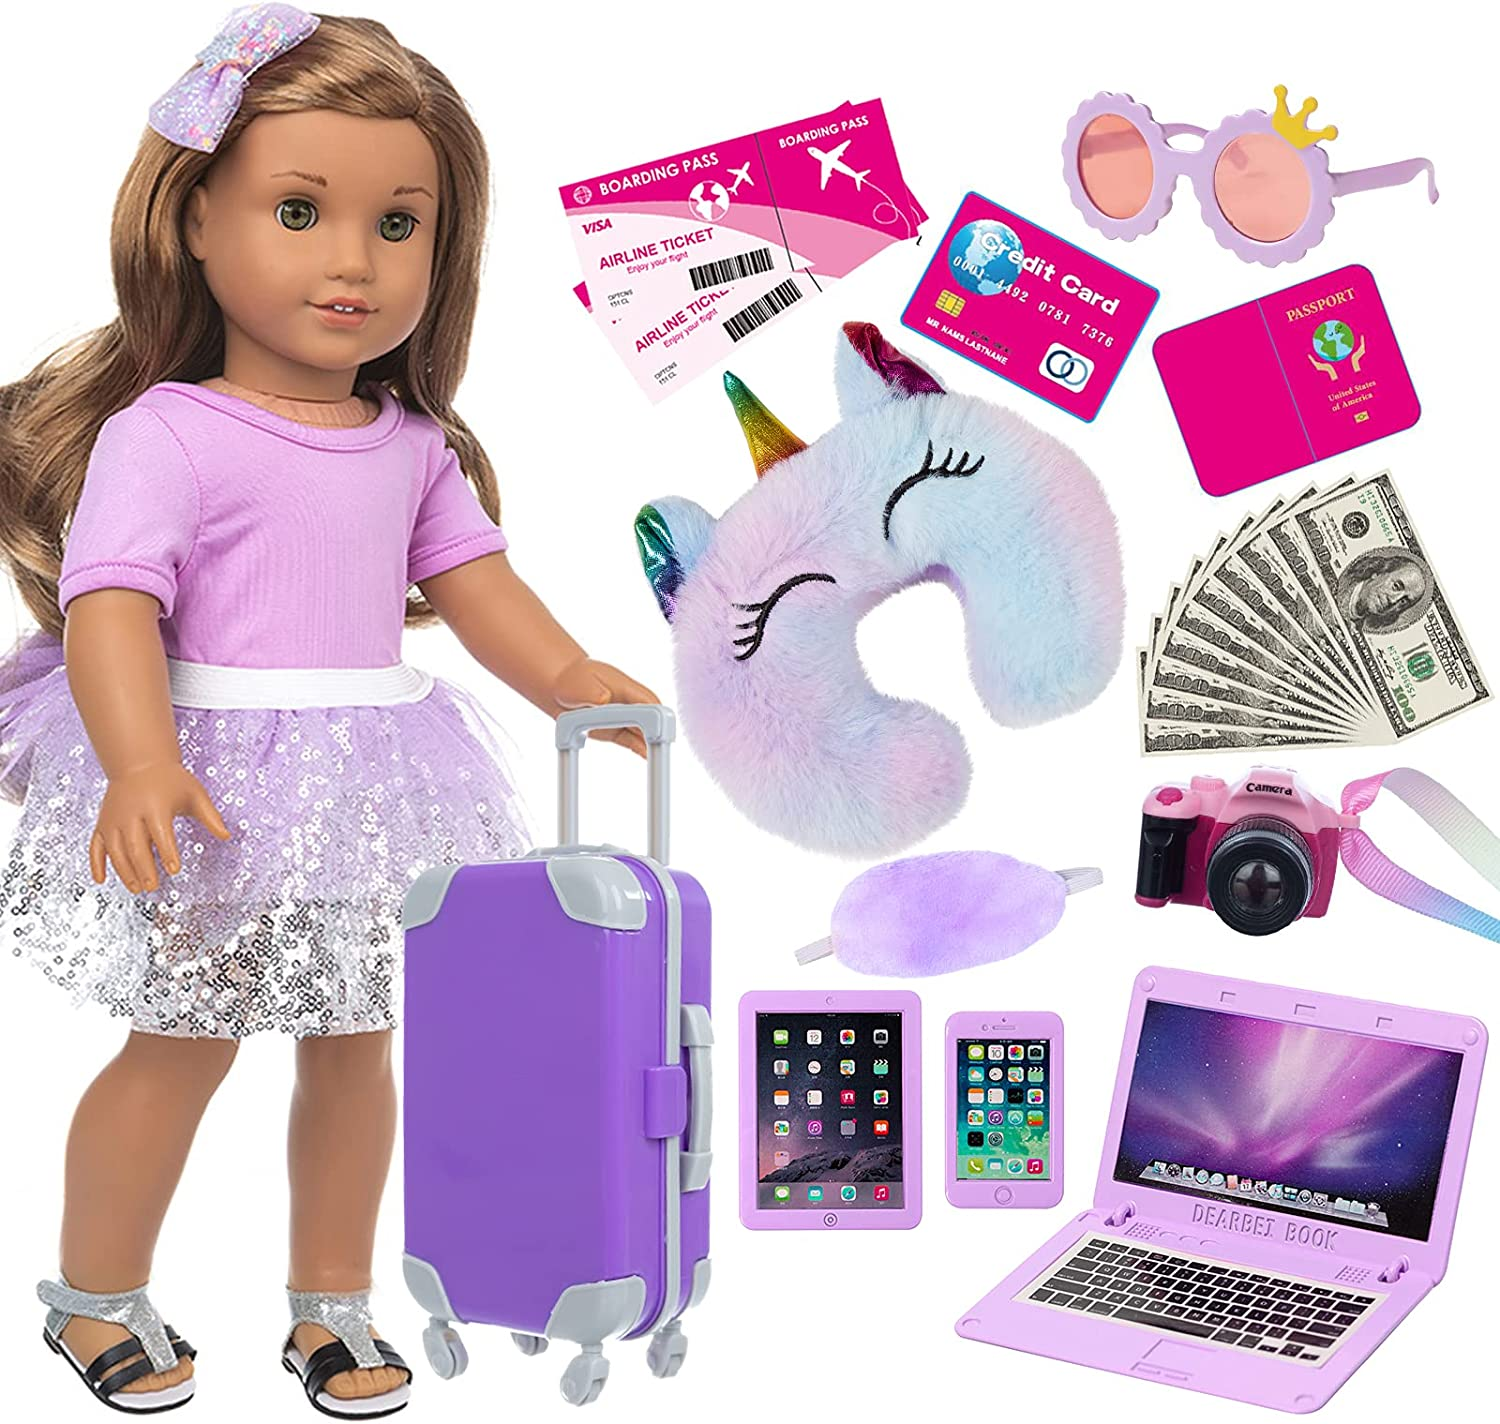 ZNTWEI American 18 New product type Inch Girl Doll Travel Set Play Outlet SALE with Suitcase